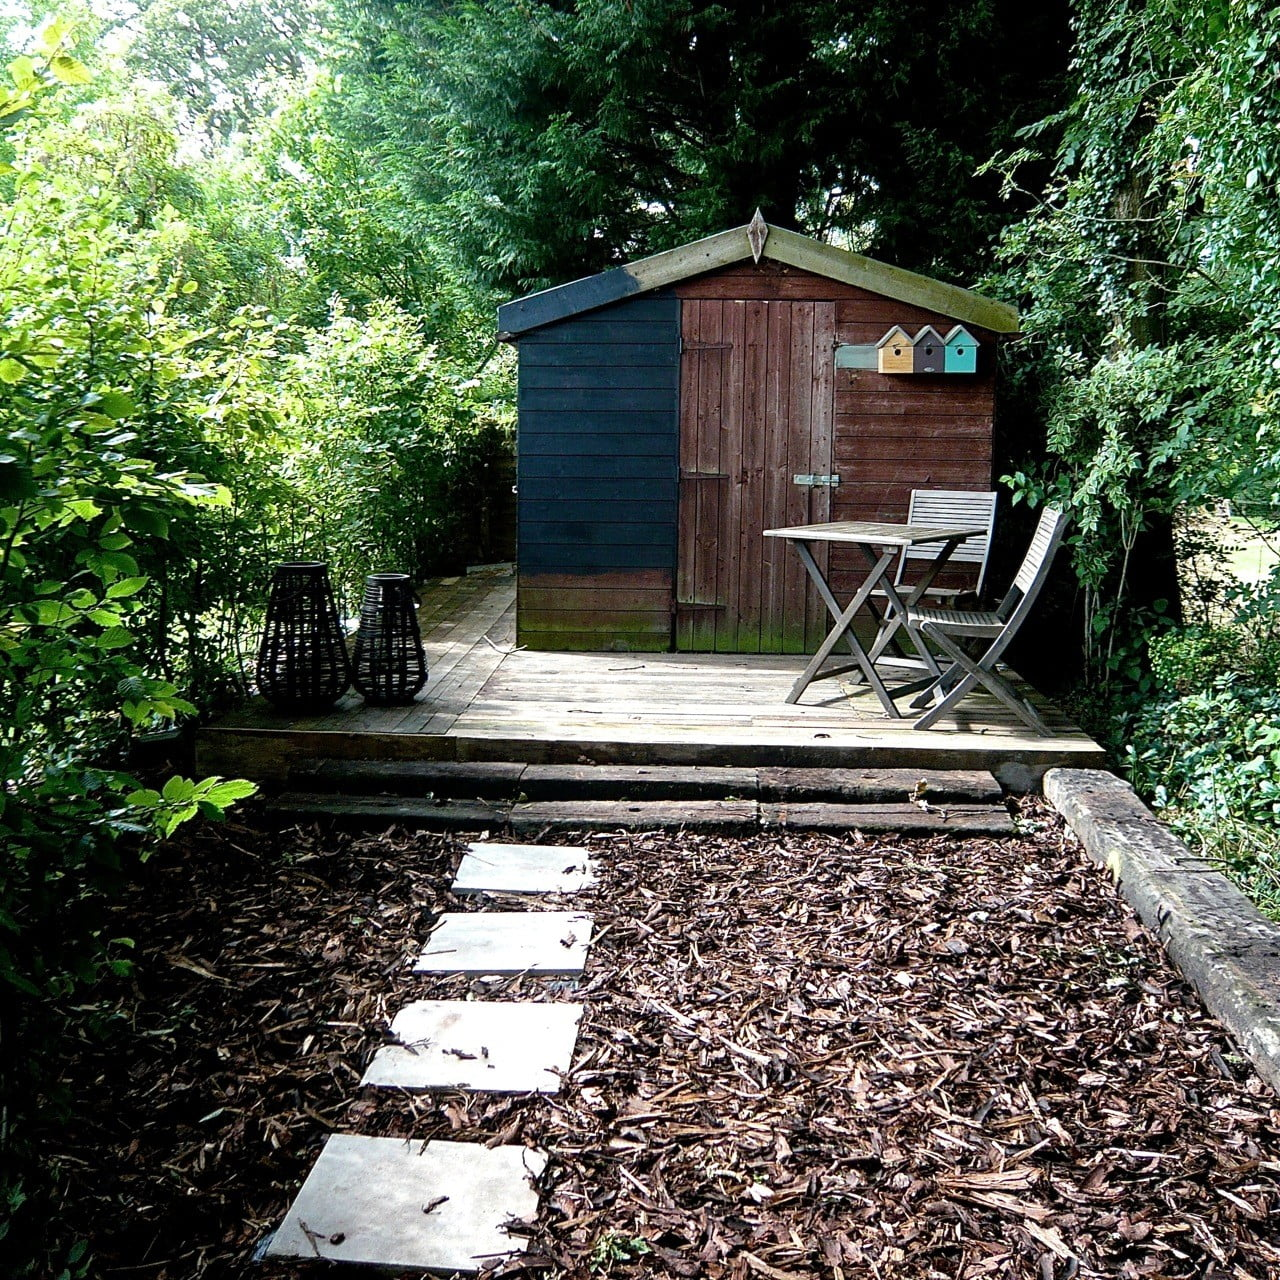 Our shed undergoing a transformation from shabby to smart - half way there!